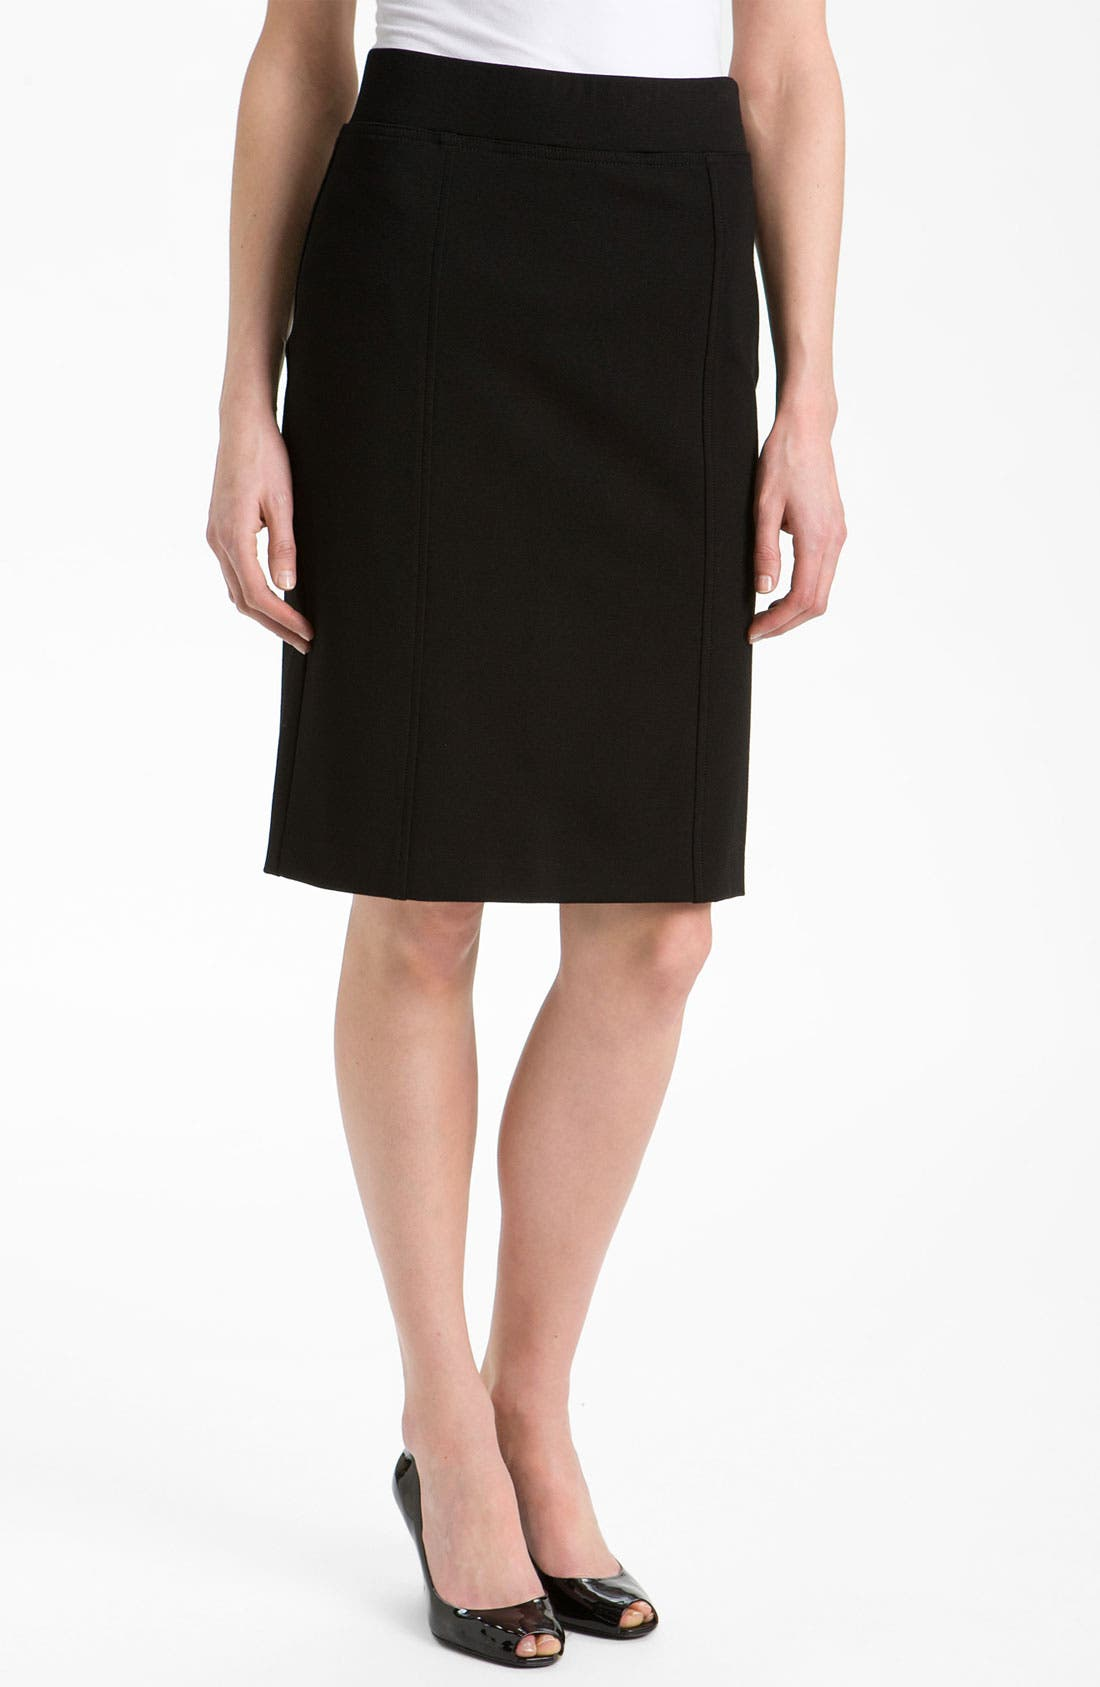 Alternate Image 1 Selected - NYDJ 'Prudence' Ponte Skirt